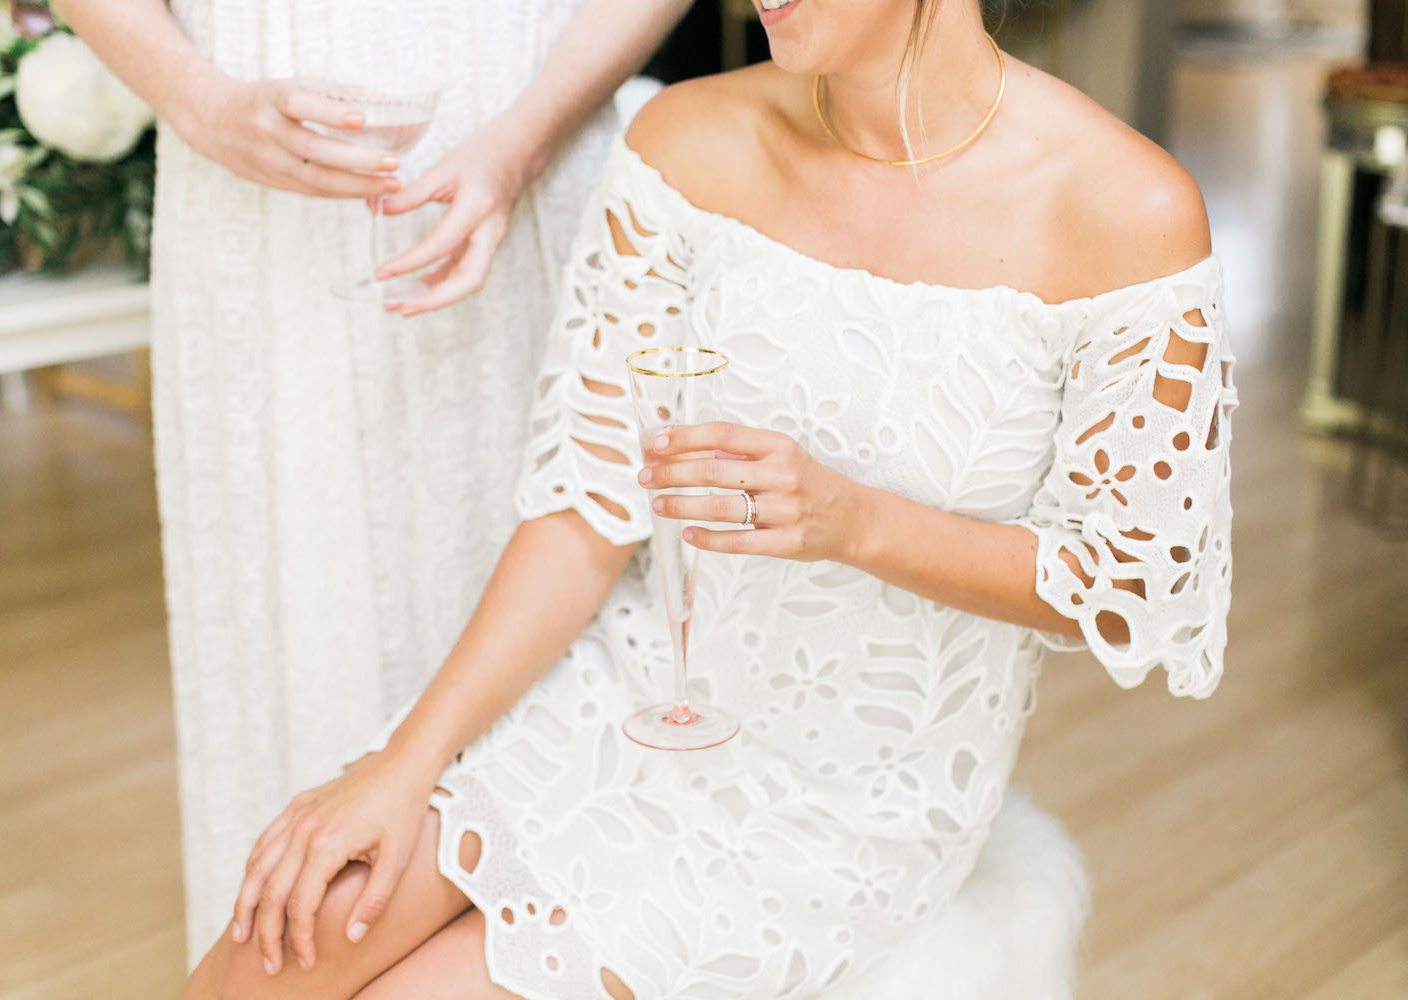 Easy white dresses that can be dressed up for your wedding, or down for your honeymoon | A Fabulous Fete